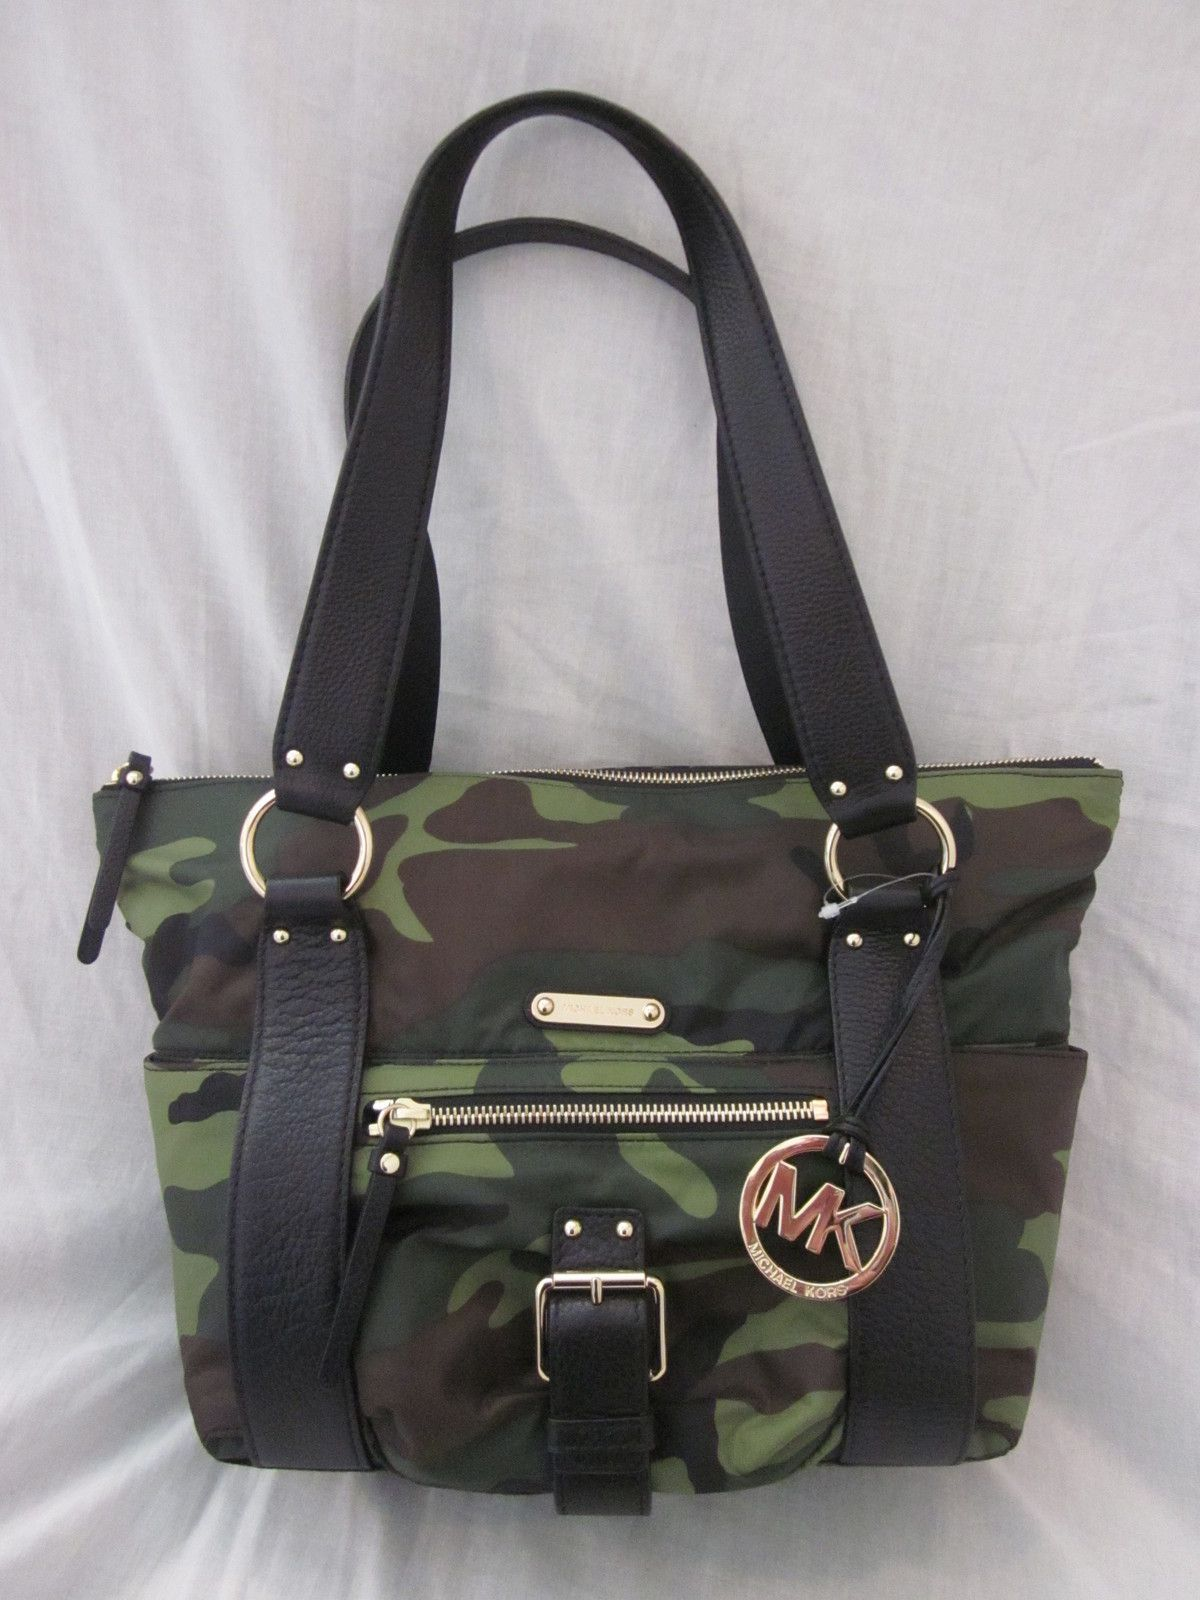 Michael Kors camo bag